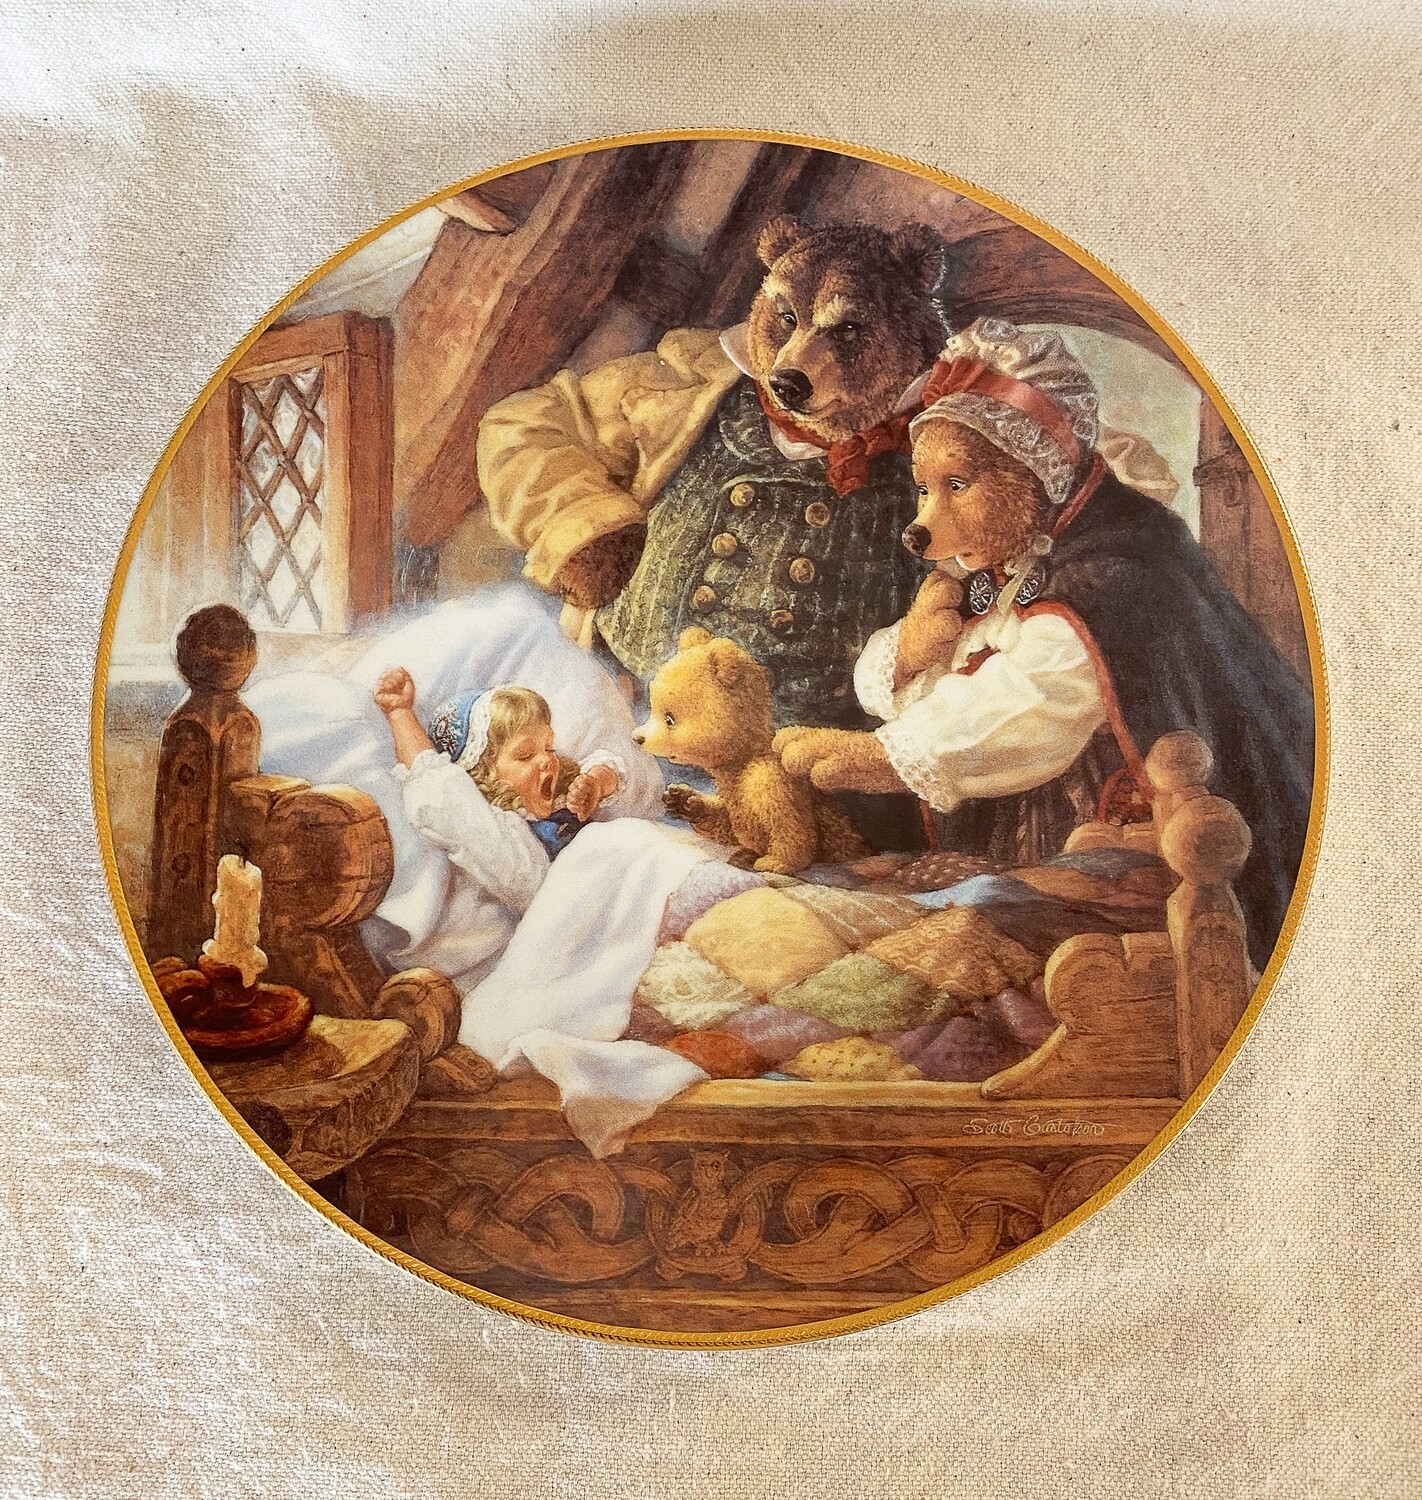 Knowles Scott Gustafson Porcelain Plate - Goldilocks and The Three Bears